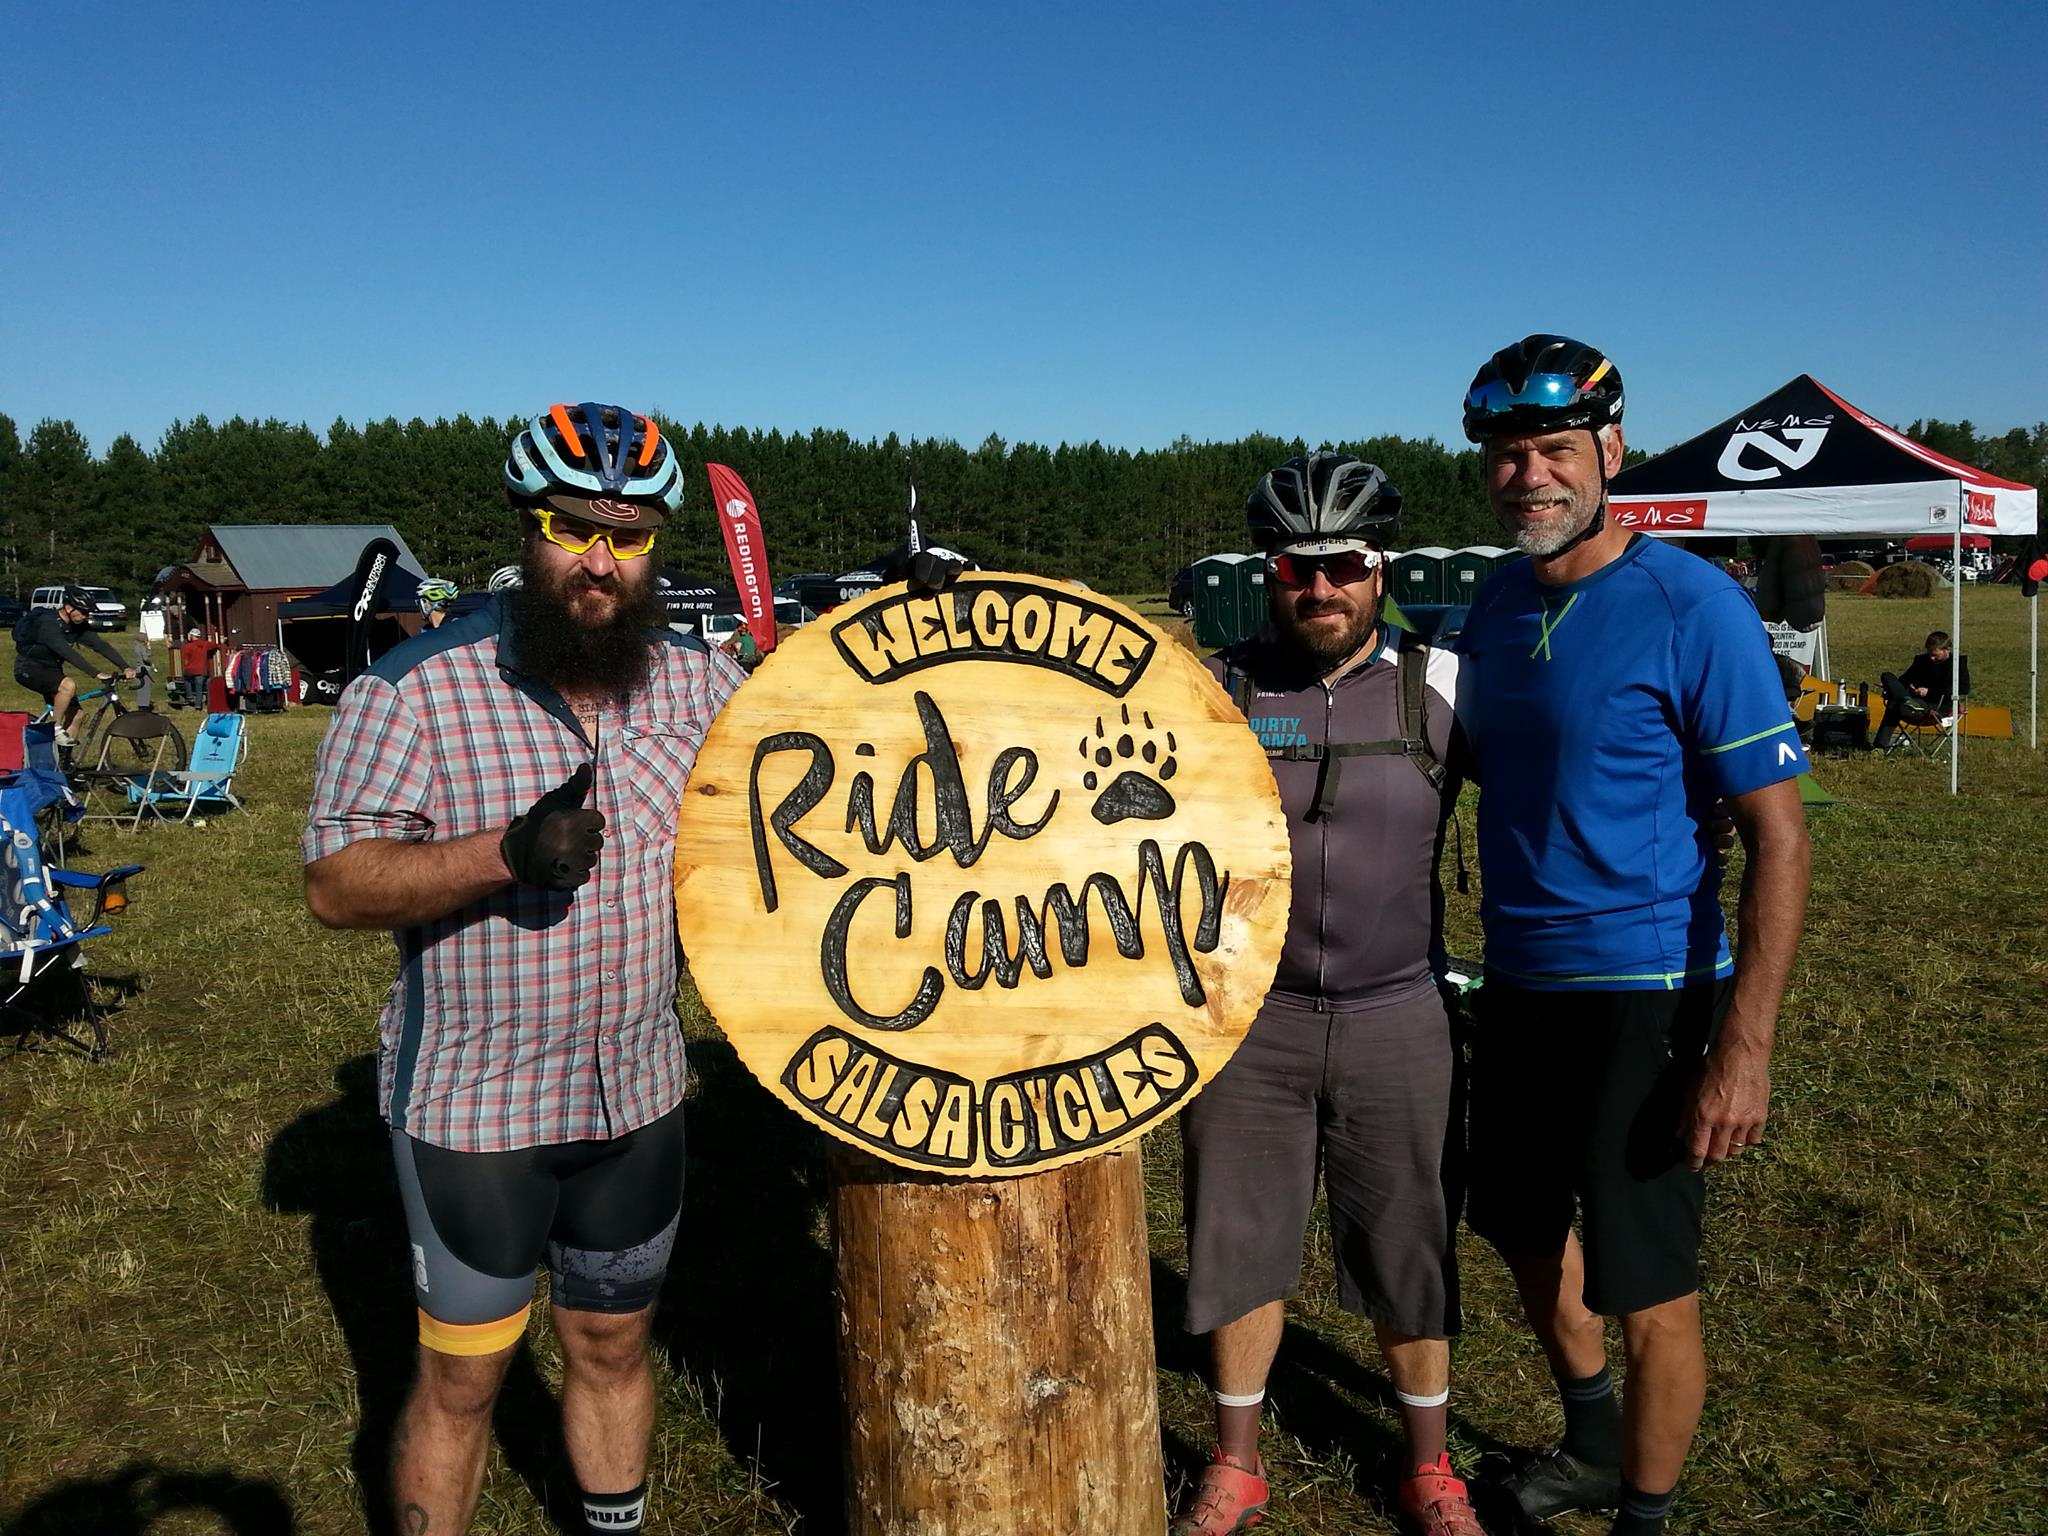 Chequamegon Fat Tire Festival - Cable, Wisconsin  photo:  Scott o'mara